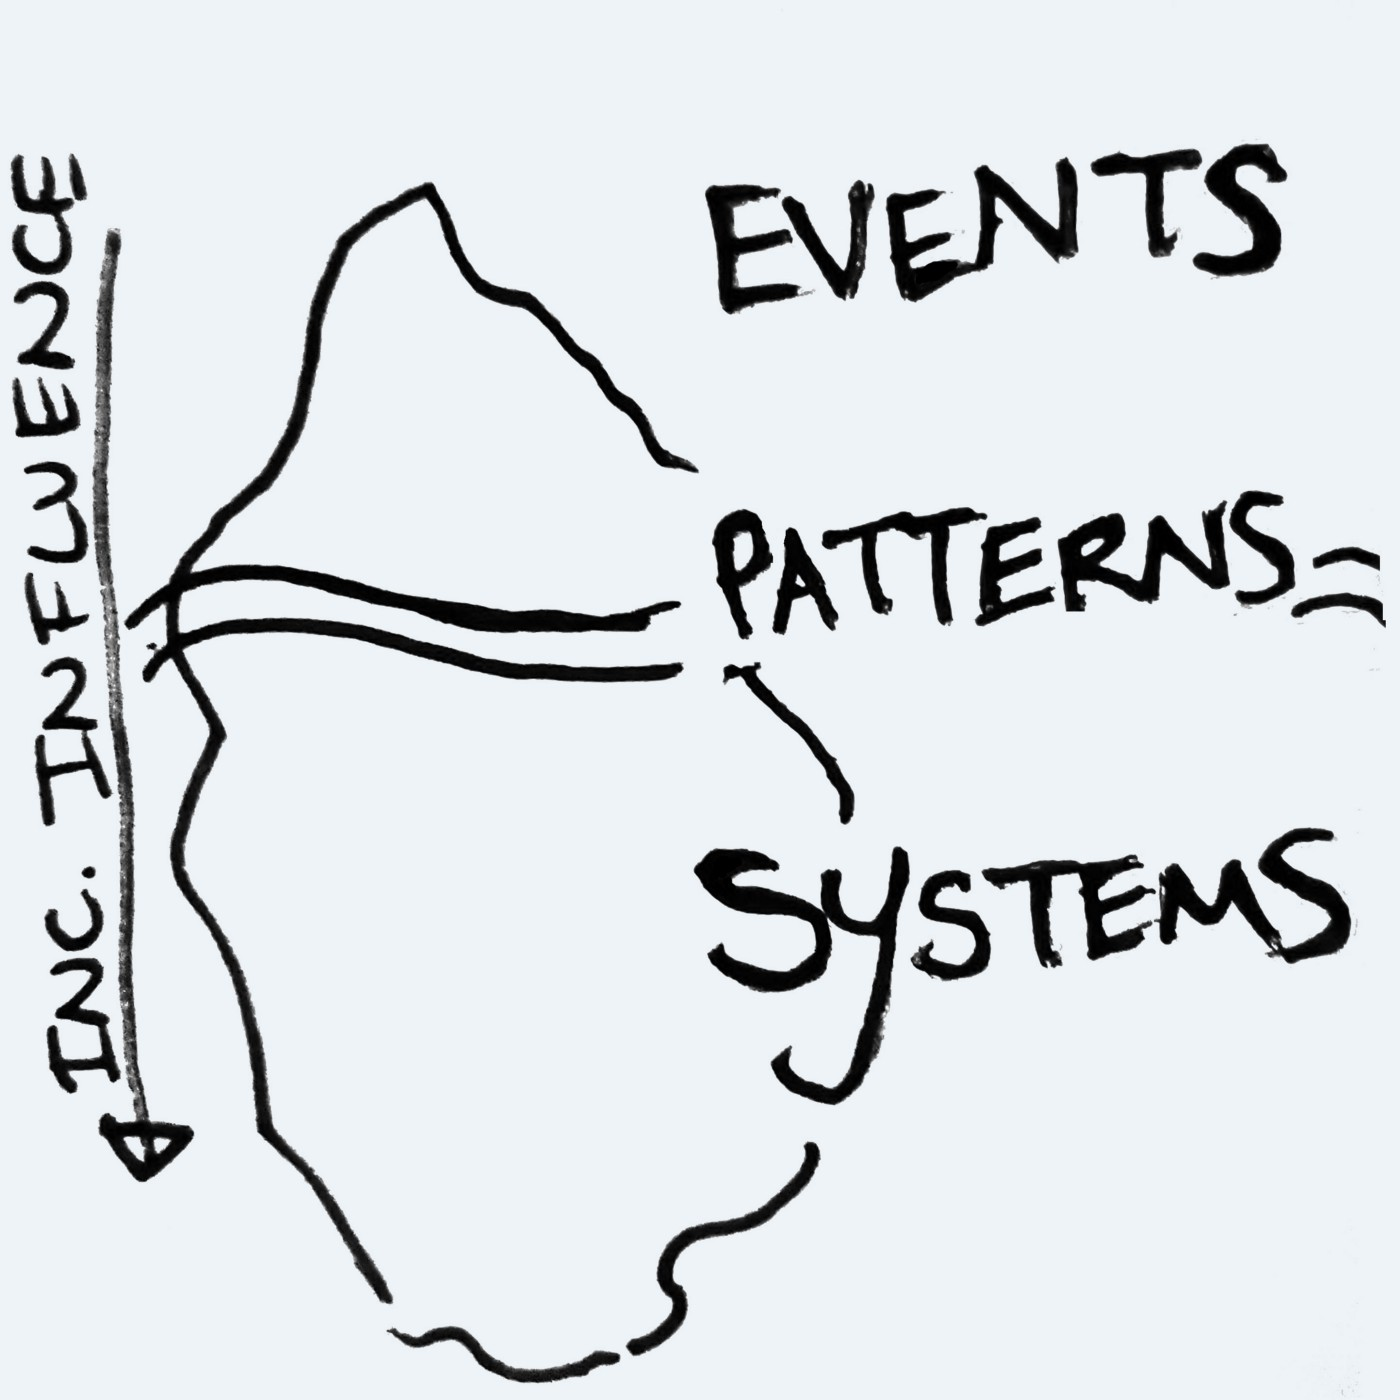 The Iceberg model from Systems Thinking, simplified: Events, Patterns and Systems